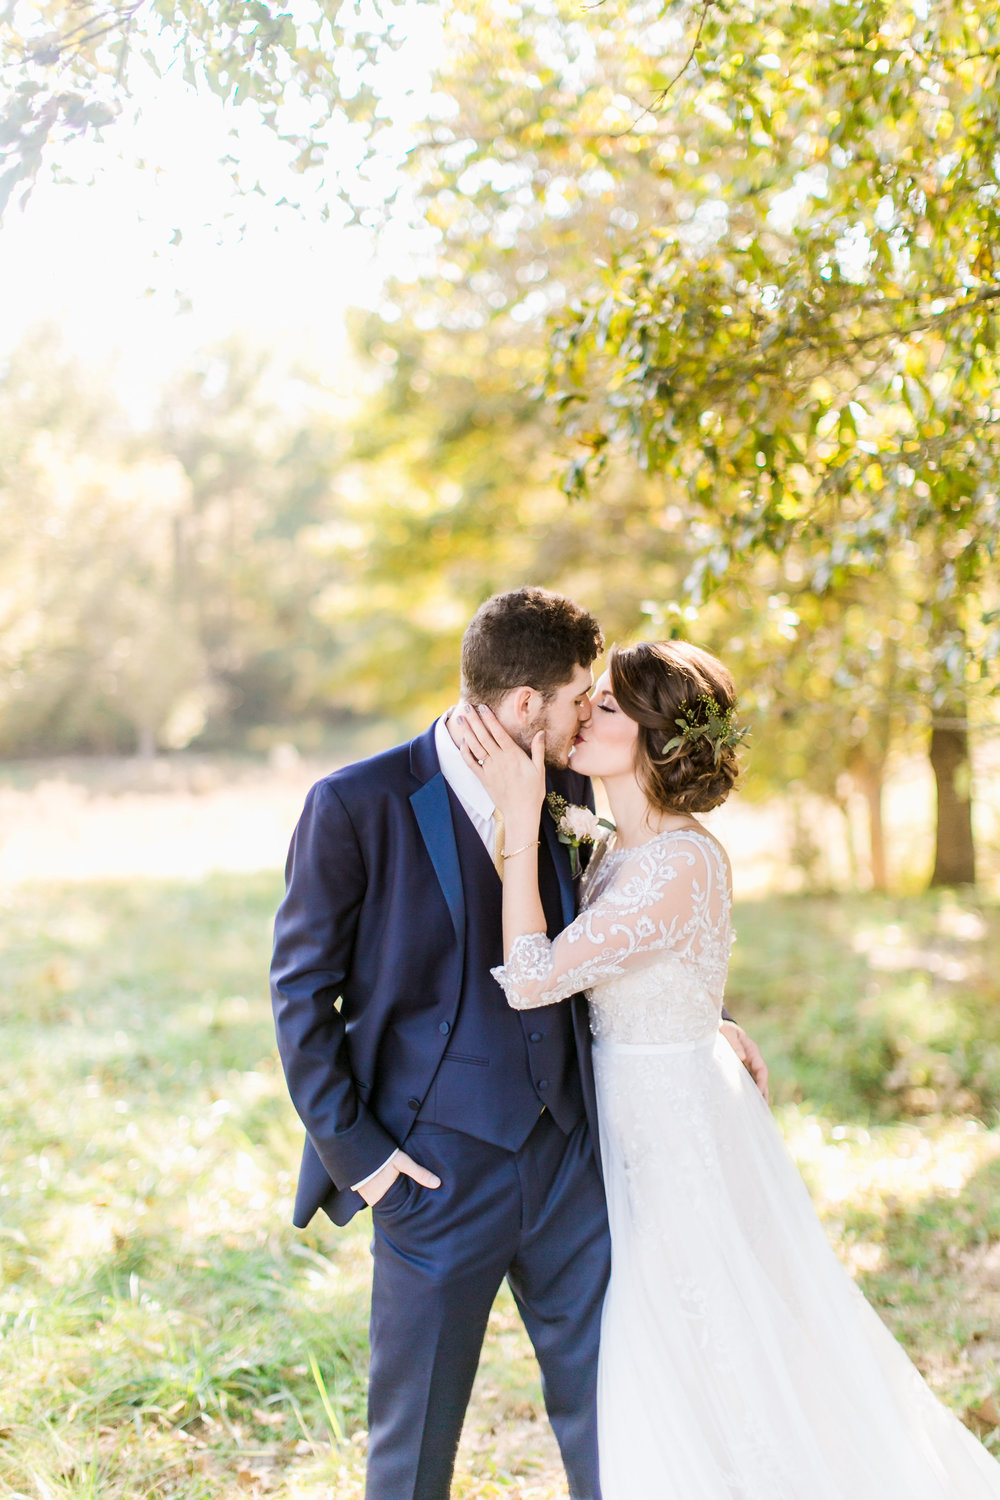 MissouriRusticWedding_StLouisWeddingPhotographer_AliciaDan_CatherineRhodesPhotography-1706-Edit.jpg